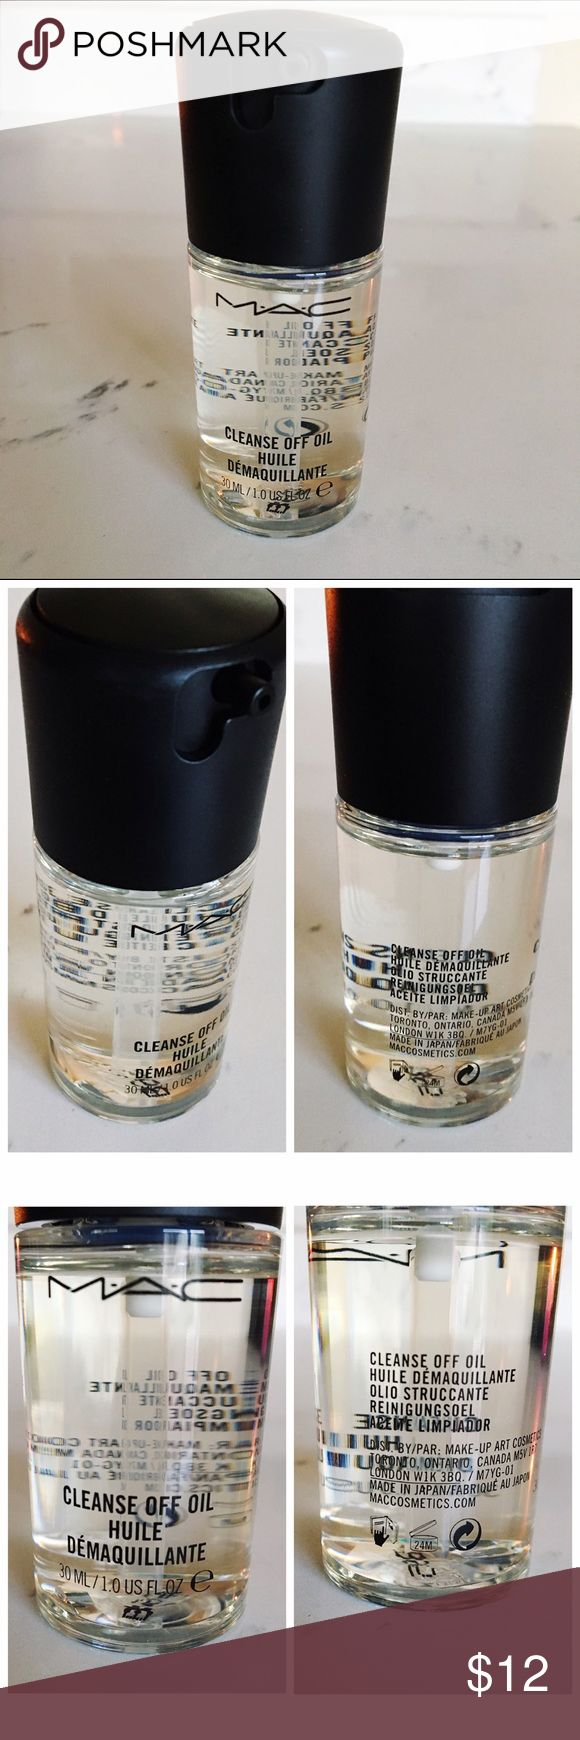 MAC Cleanse Off Oil Mini New, never used. Not tag as these don't come tagged. MAC Cosmetics Cleanse Off Oil Sized to Go 30mL/1.0 fl oz. Last picture included from MAC website including their description of product. Great for removing makeup. Twist locking top to secure when not in use to prevent leaking. Please ask all questions prior to purchase. Thanks! *No trades. *Price firm. MAC Cosmetics Makeup